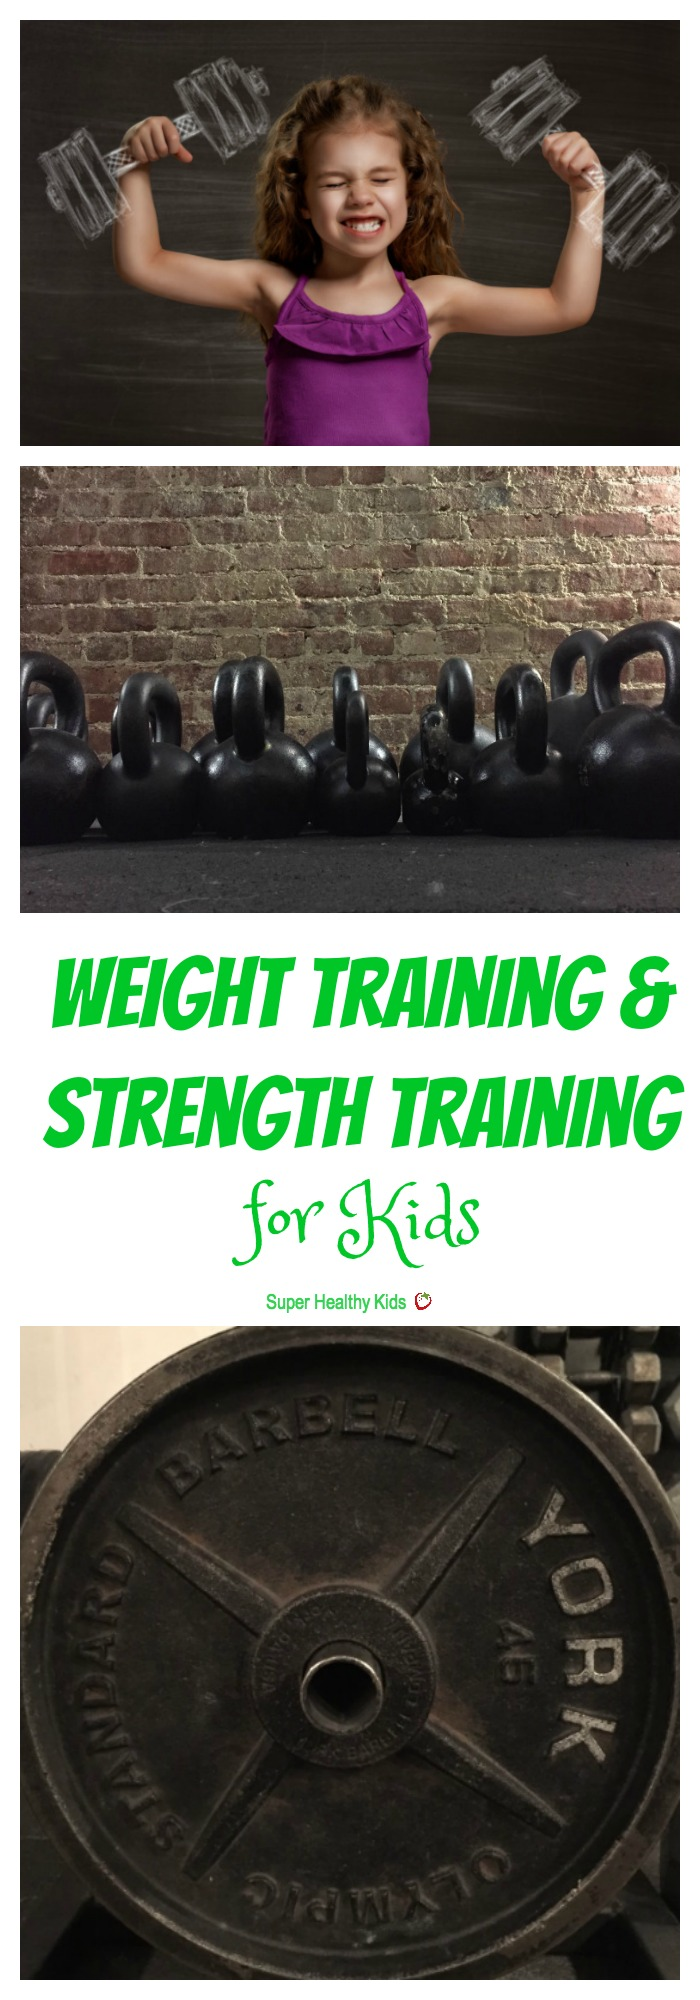 FITNESS FOR KIDS - Weight Training & Strength Training for Kids. Should kids lift weights for exercise? All about strength training for kids. http://www.superhealthykids.com/weight-training-strength-training-kids/